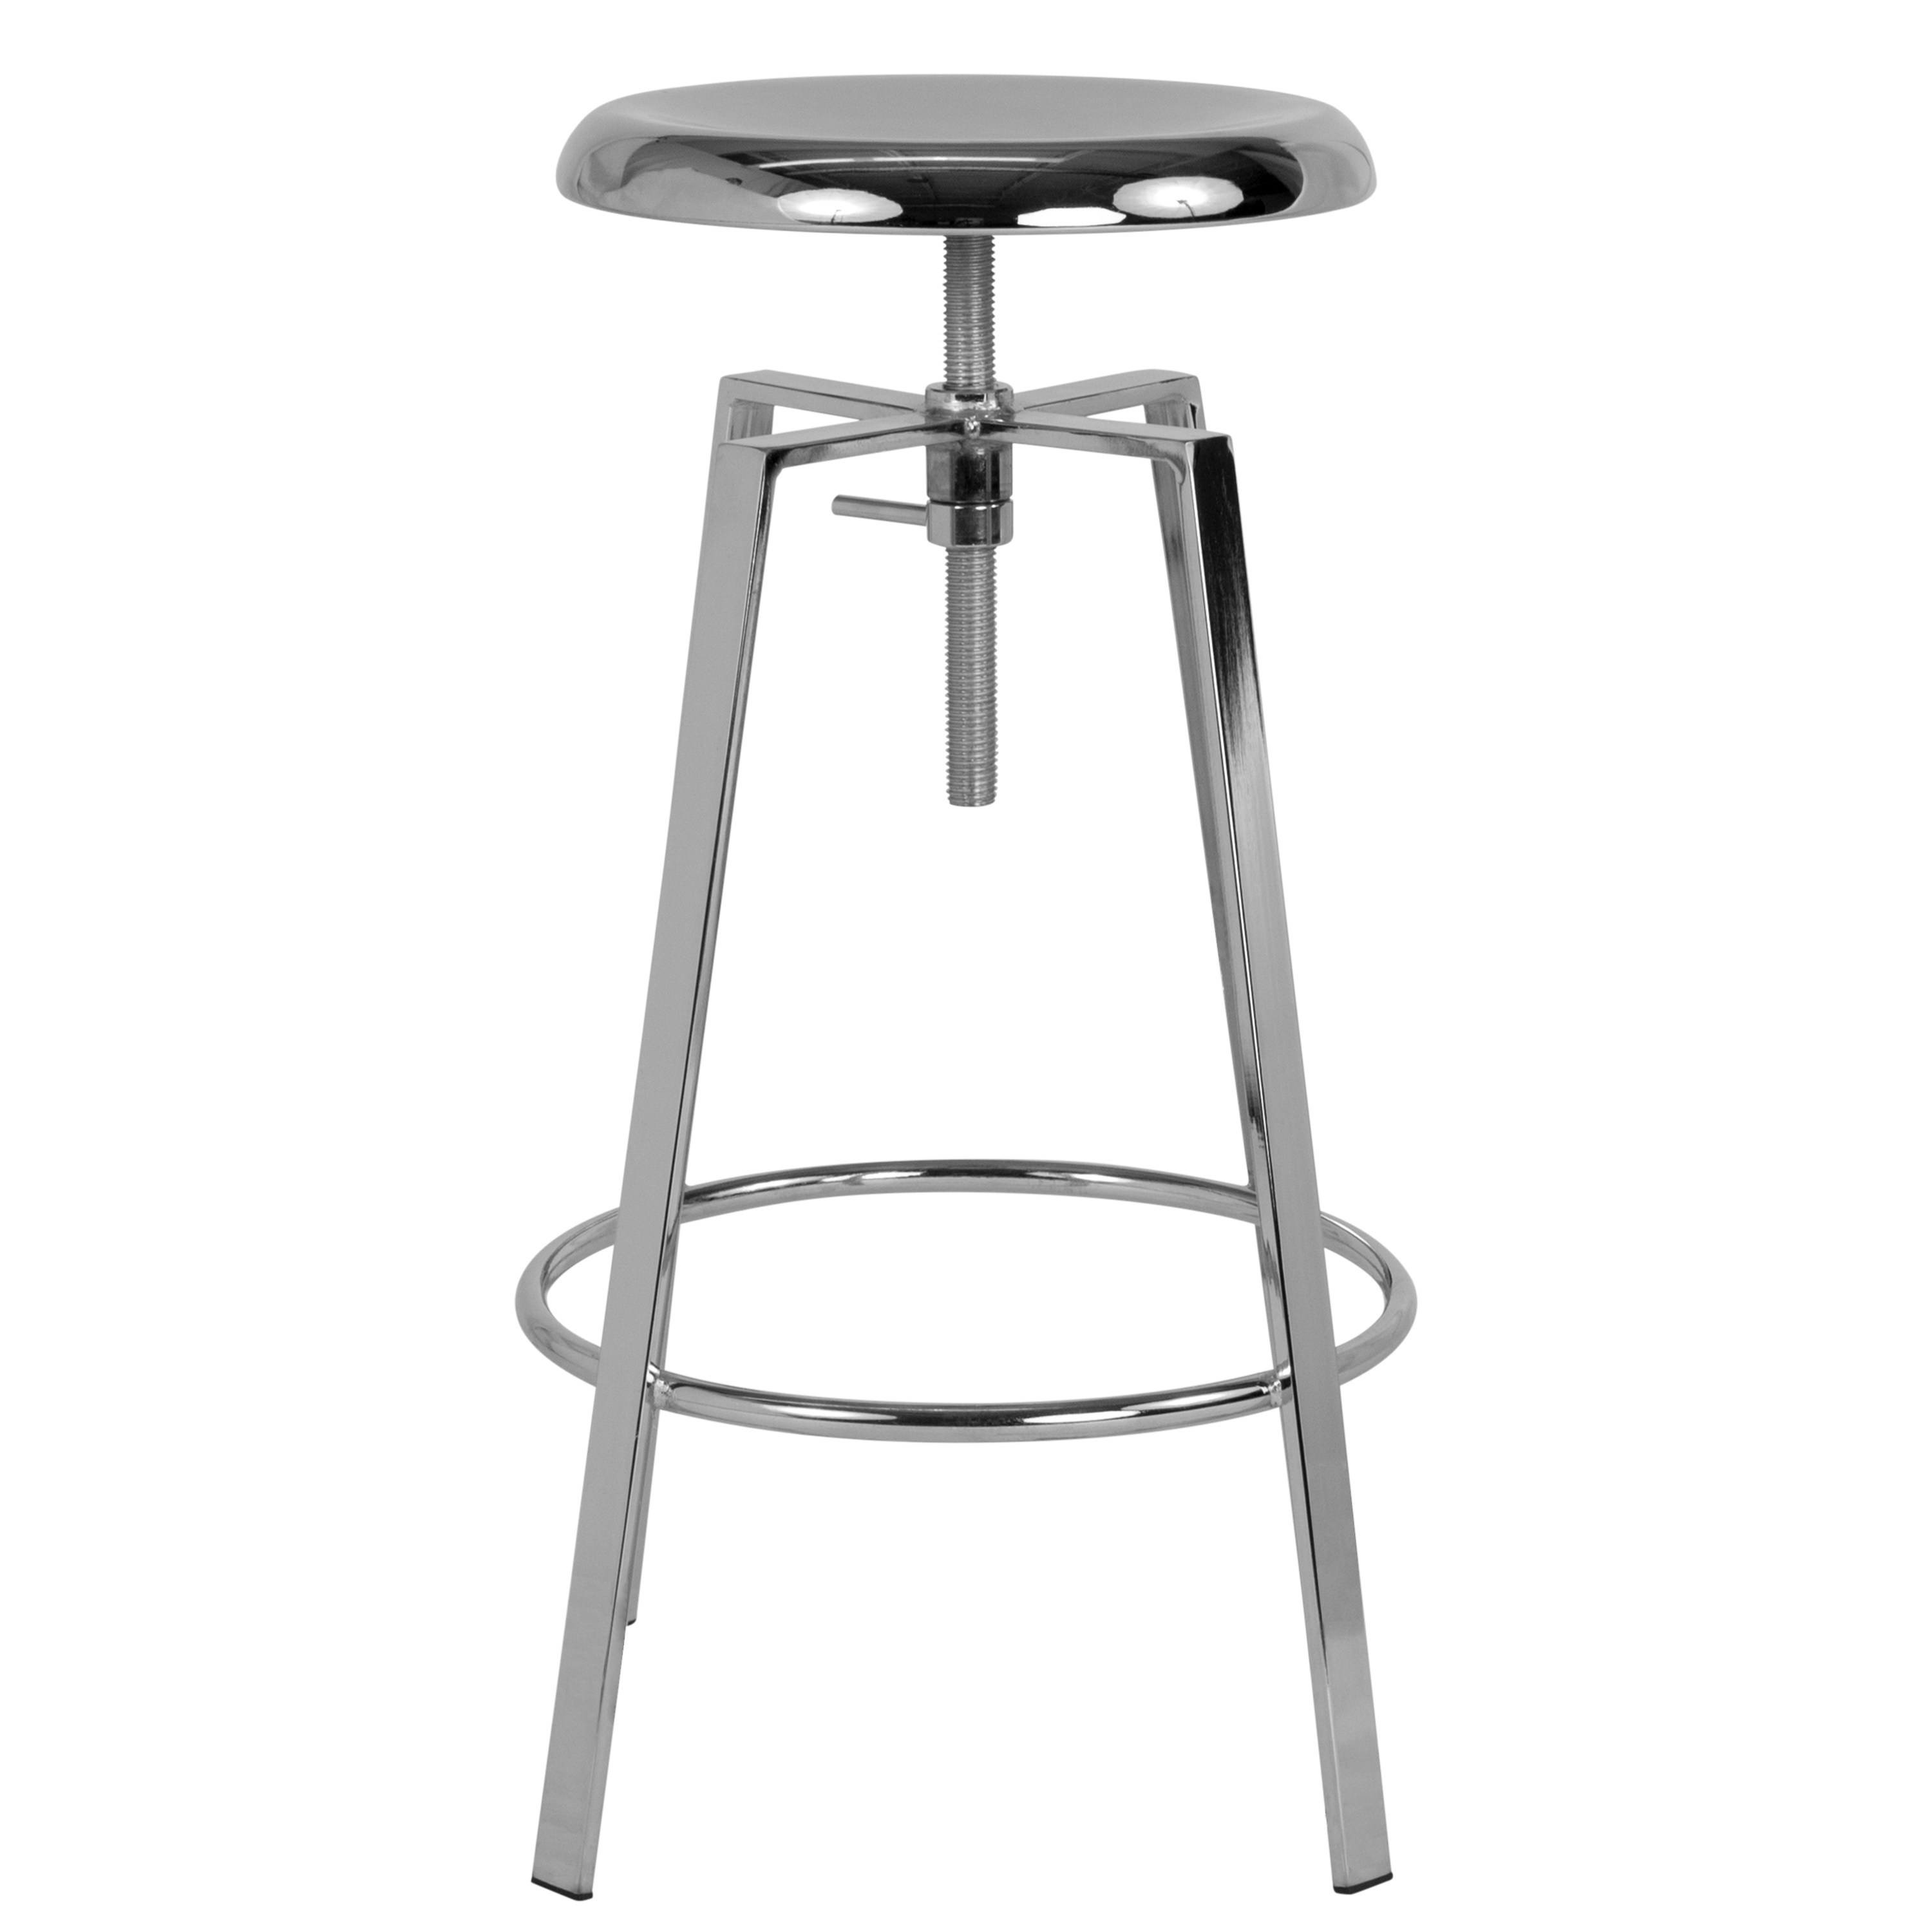 Industrial Style Barstool with Swivel Lift Seat